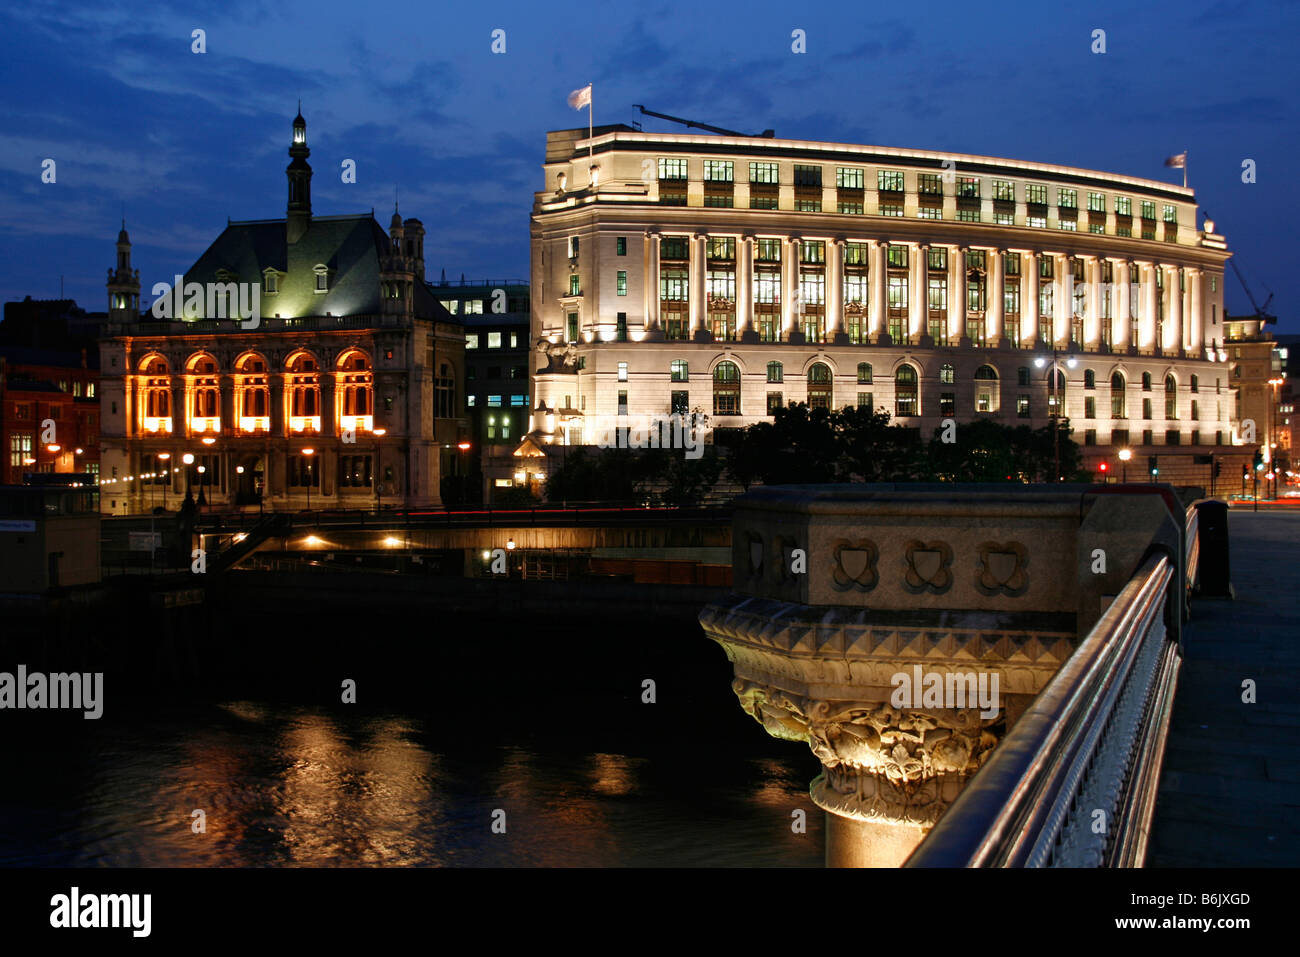 UK; England; London. The Unilever House at Victoria Embankment in London with the Blackfriars Bridge in the foreground Stock Photo